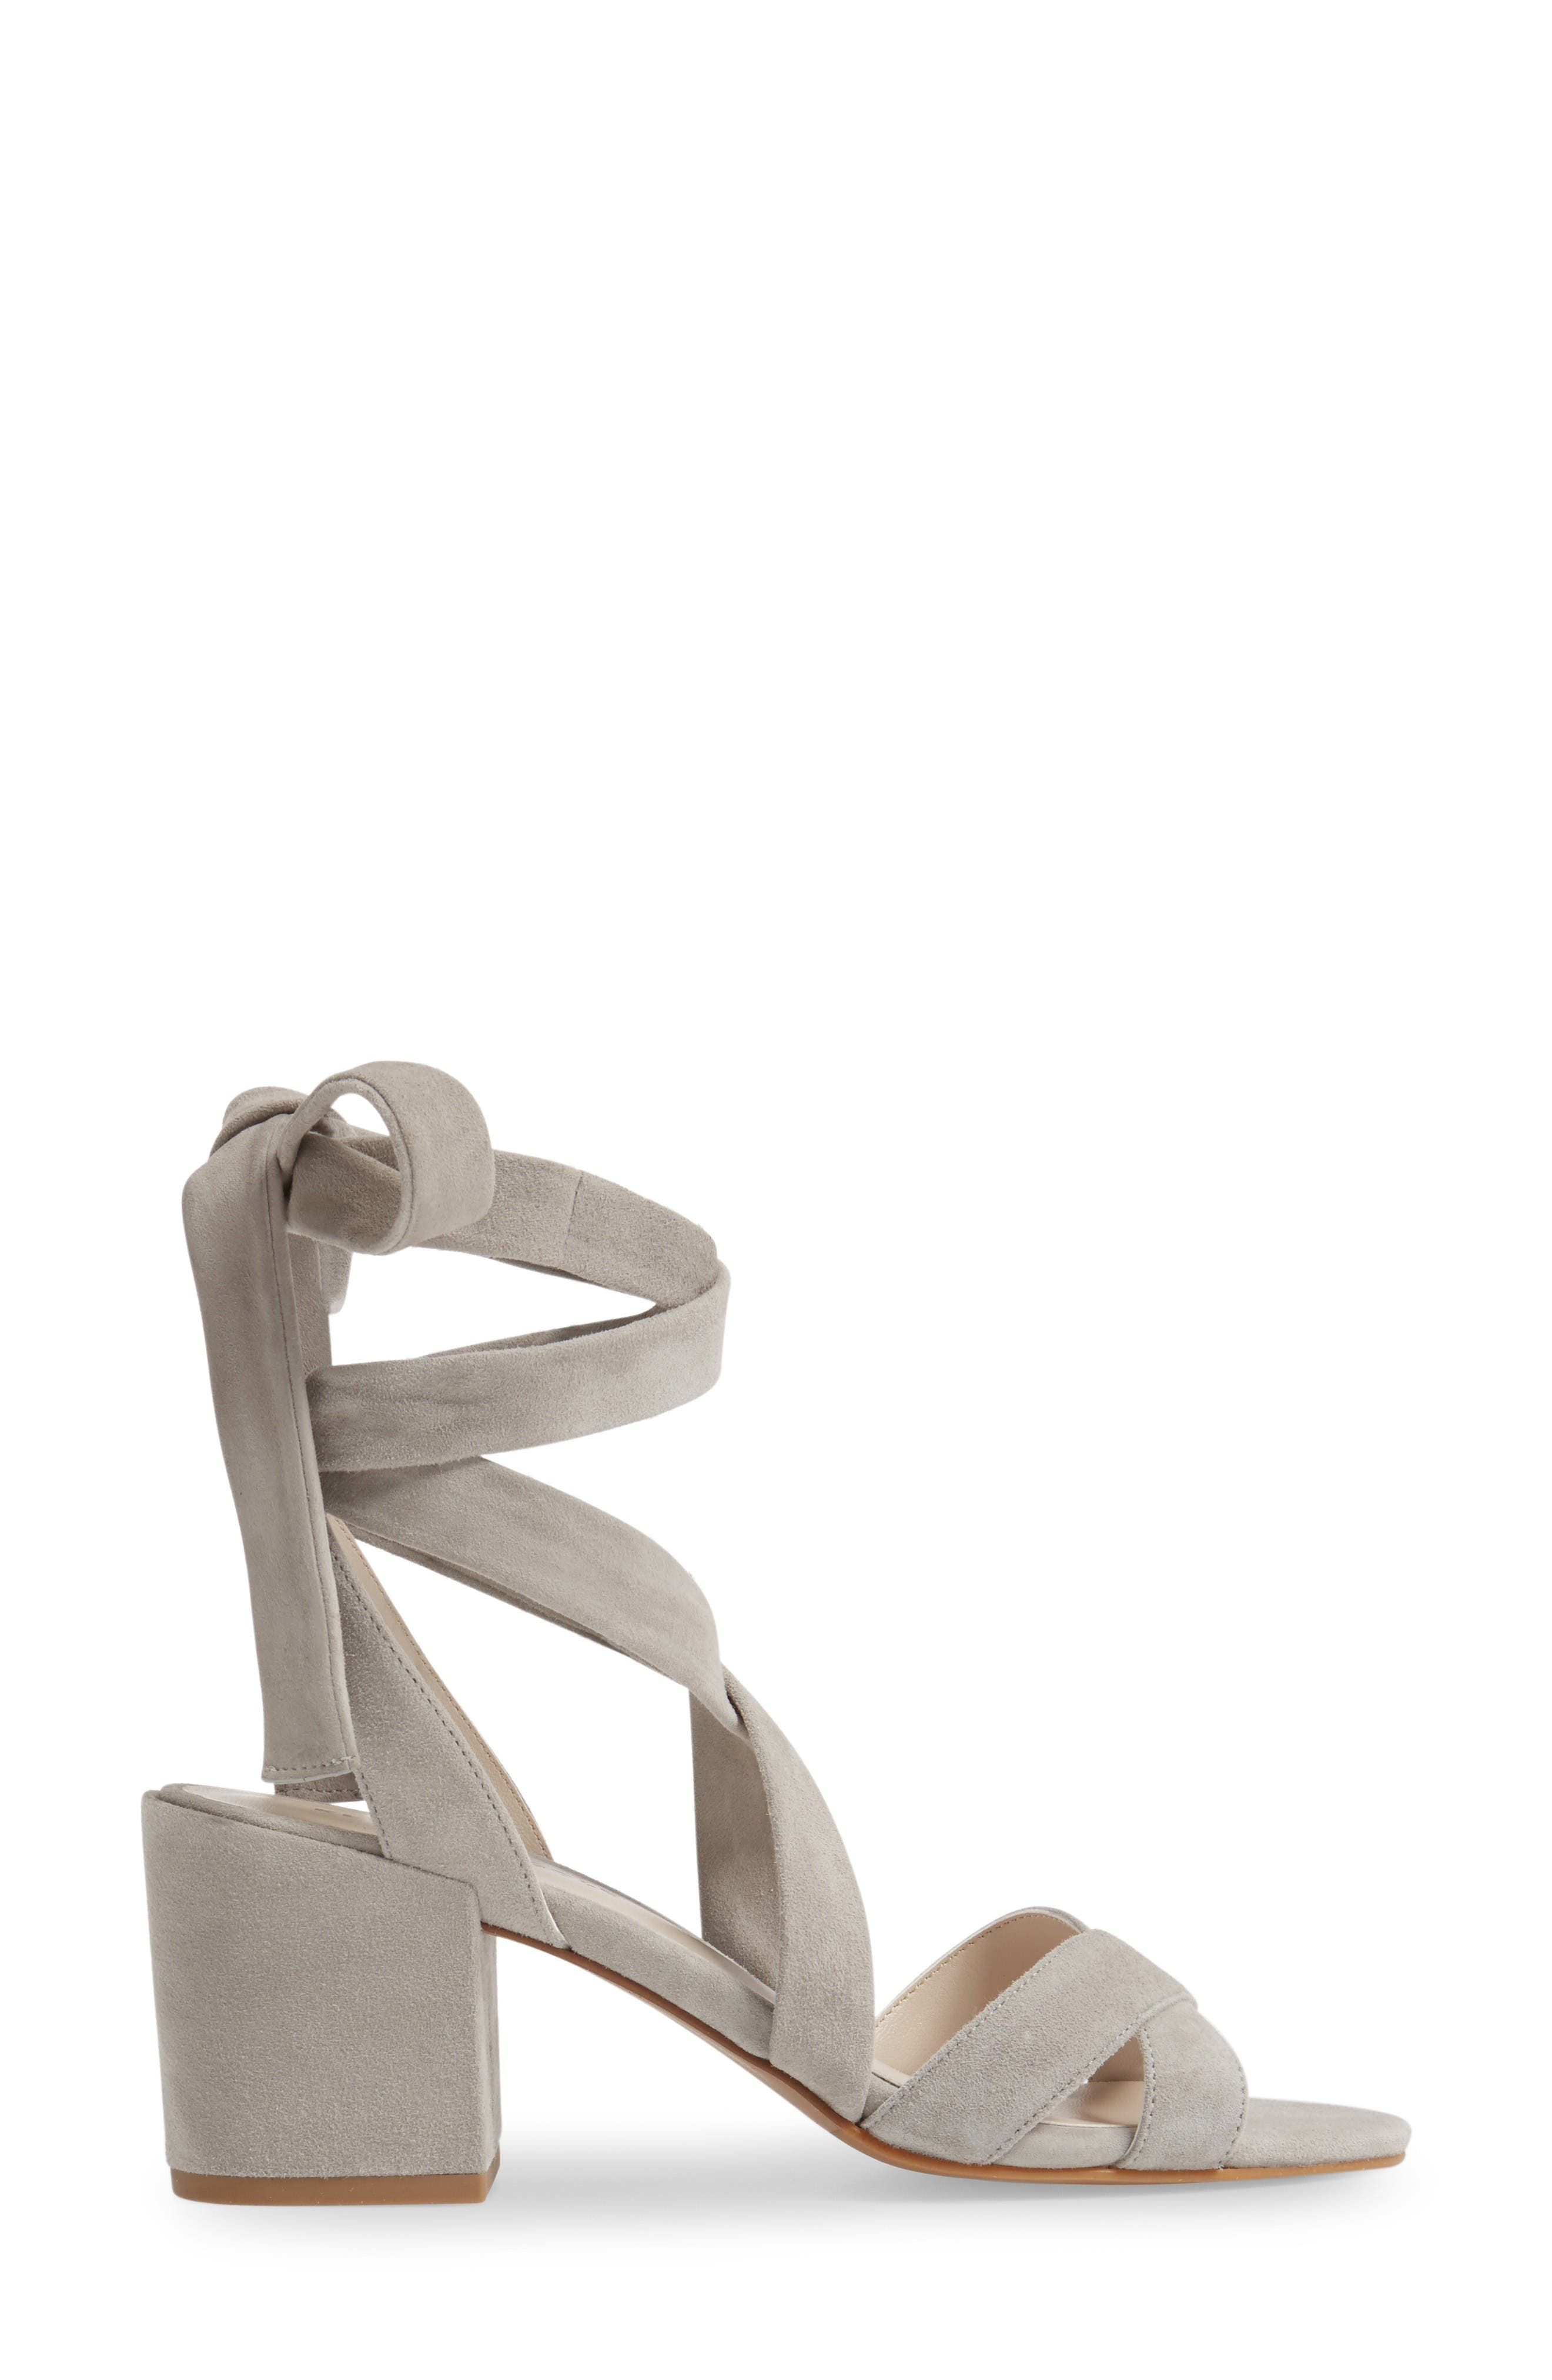 Alternate Image 3  - Kenneth Cole New York 'Victoria' Leather Ankle Strap Sandal (Women)